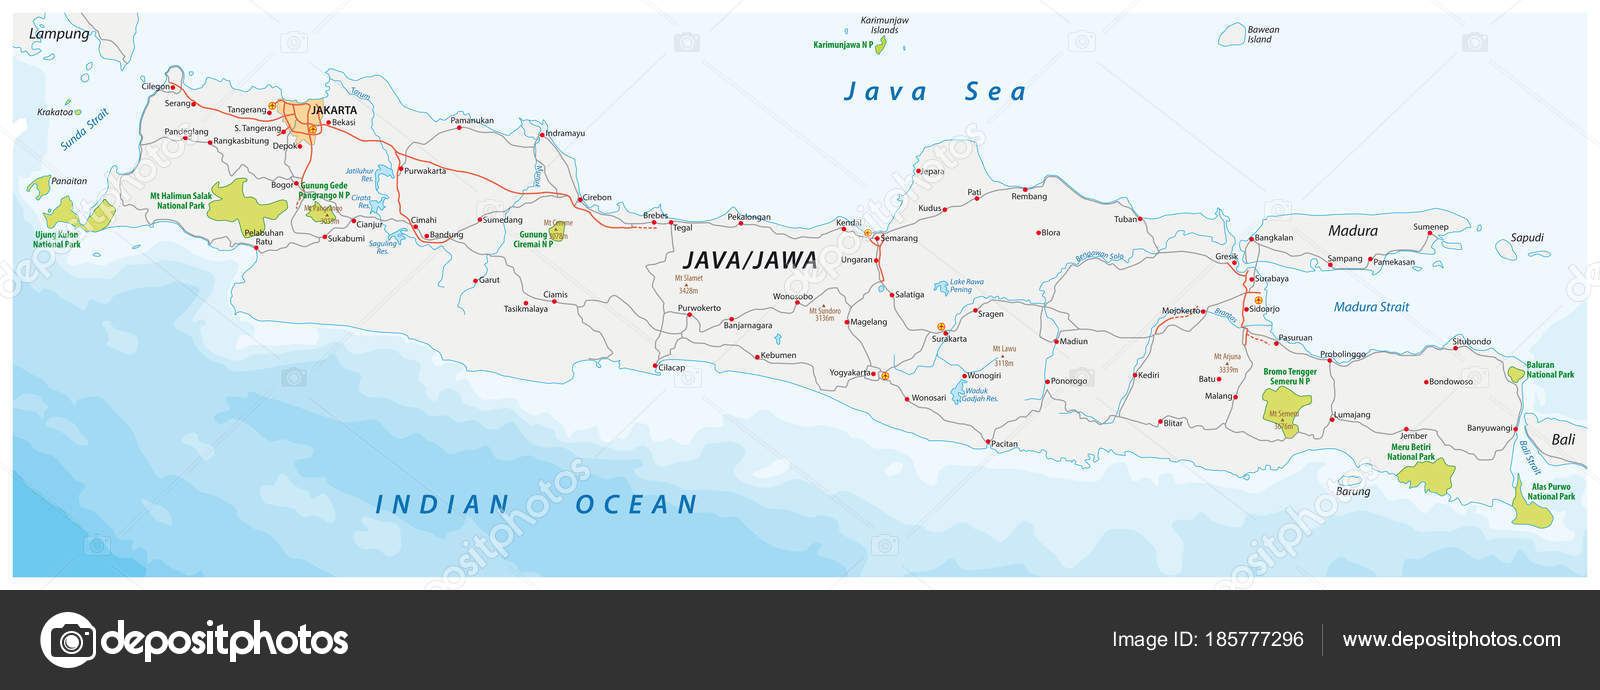 Vector road national park map indonesian island java stock vector vector road national park map indonesian island java stock vector gumiabroncs Choice Image